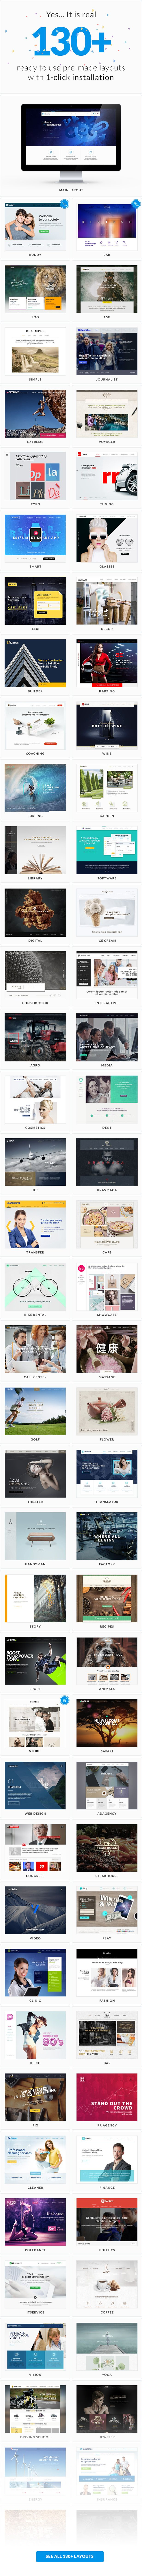 23 best WordPress themes images on Pinterest   Purpose, Role models ...